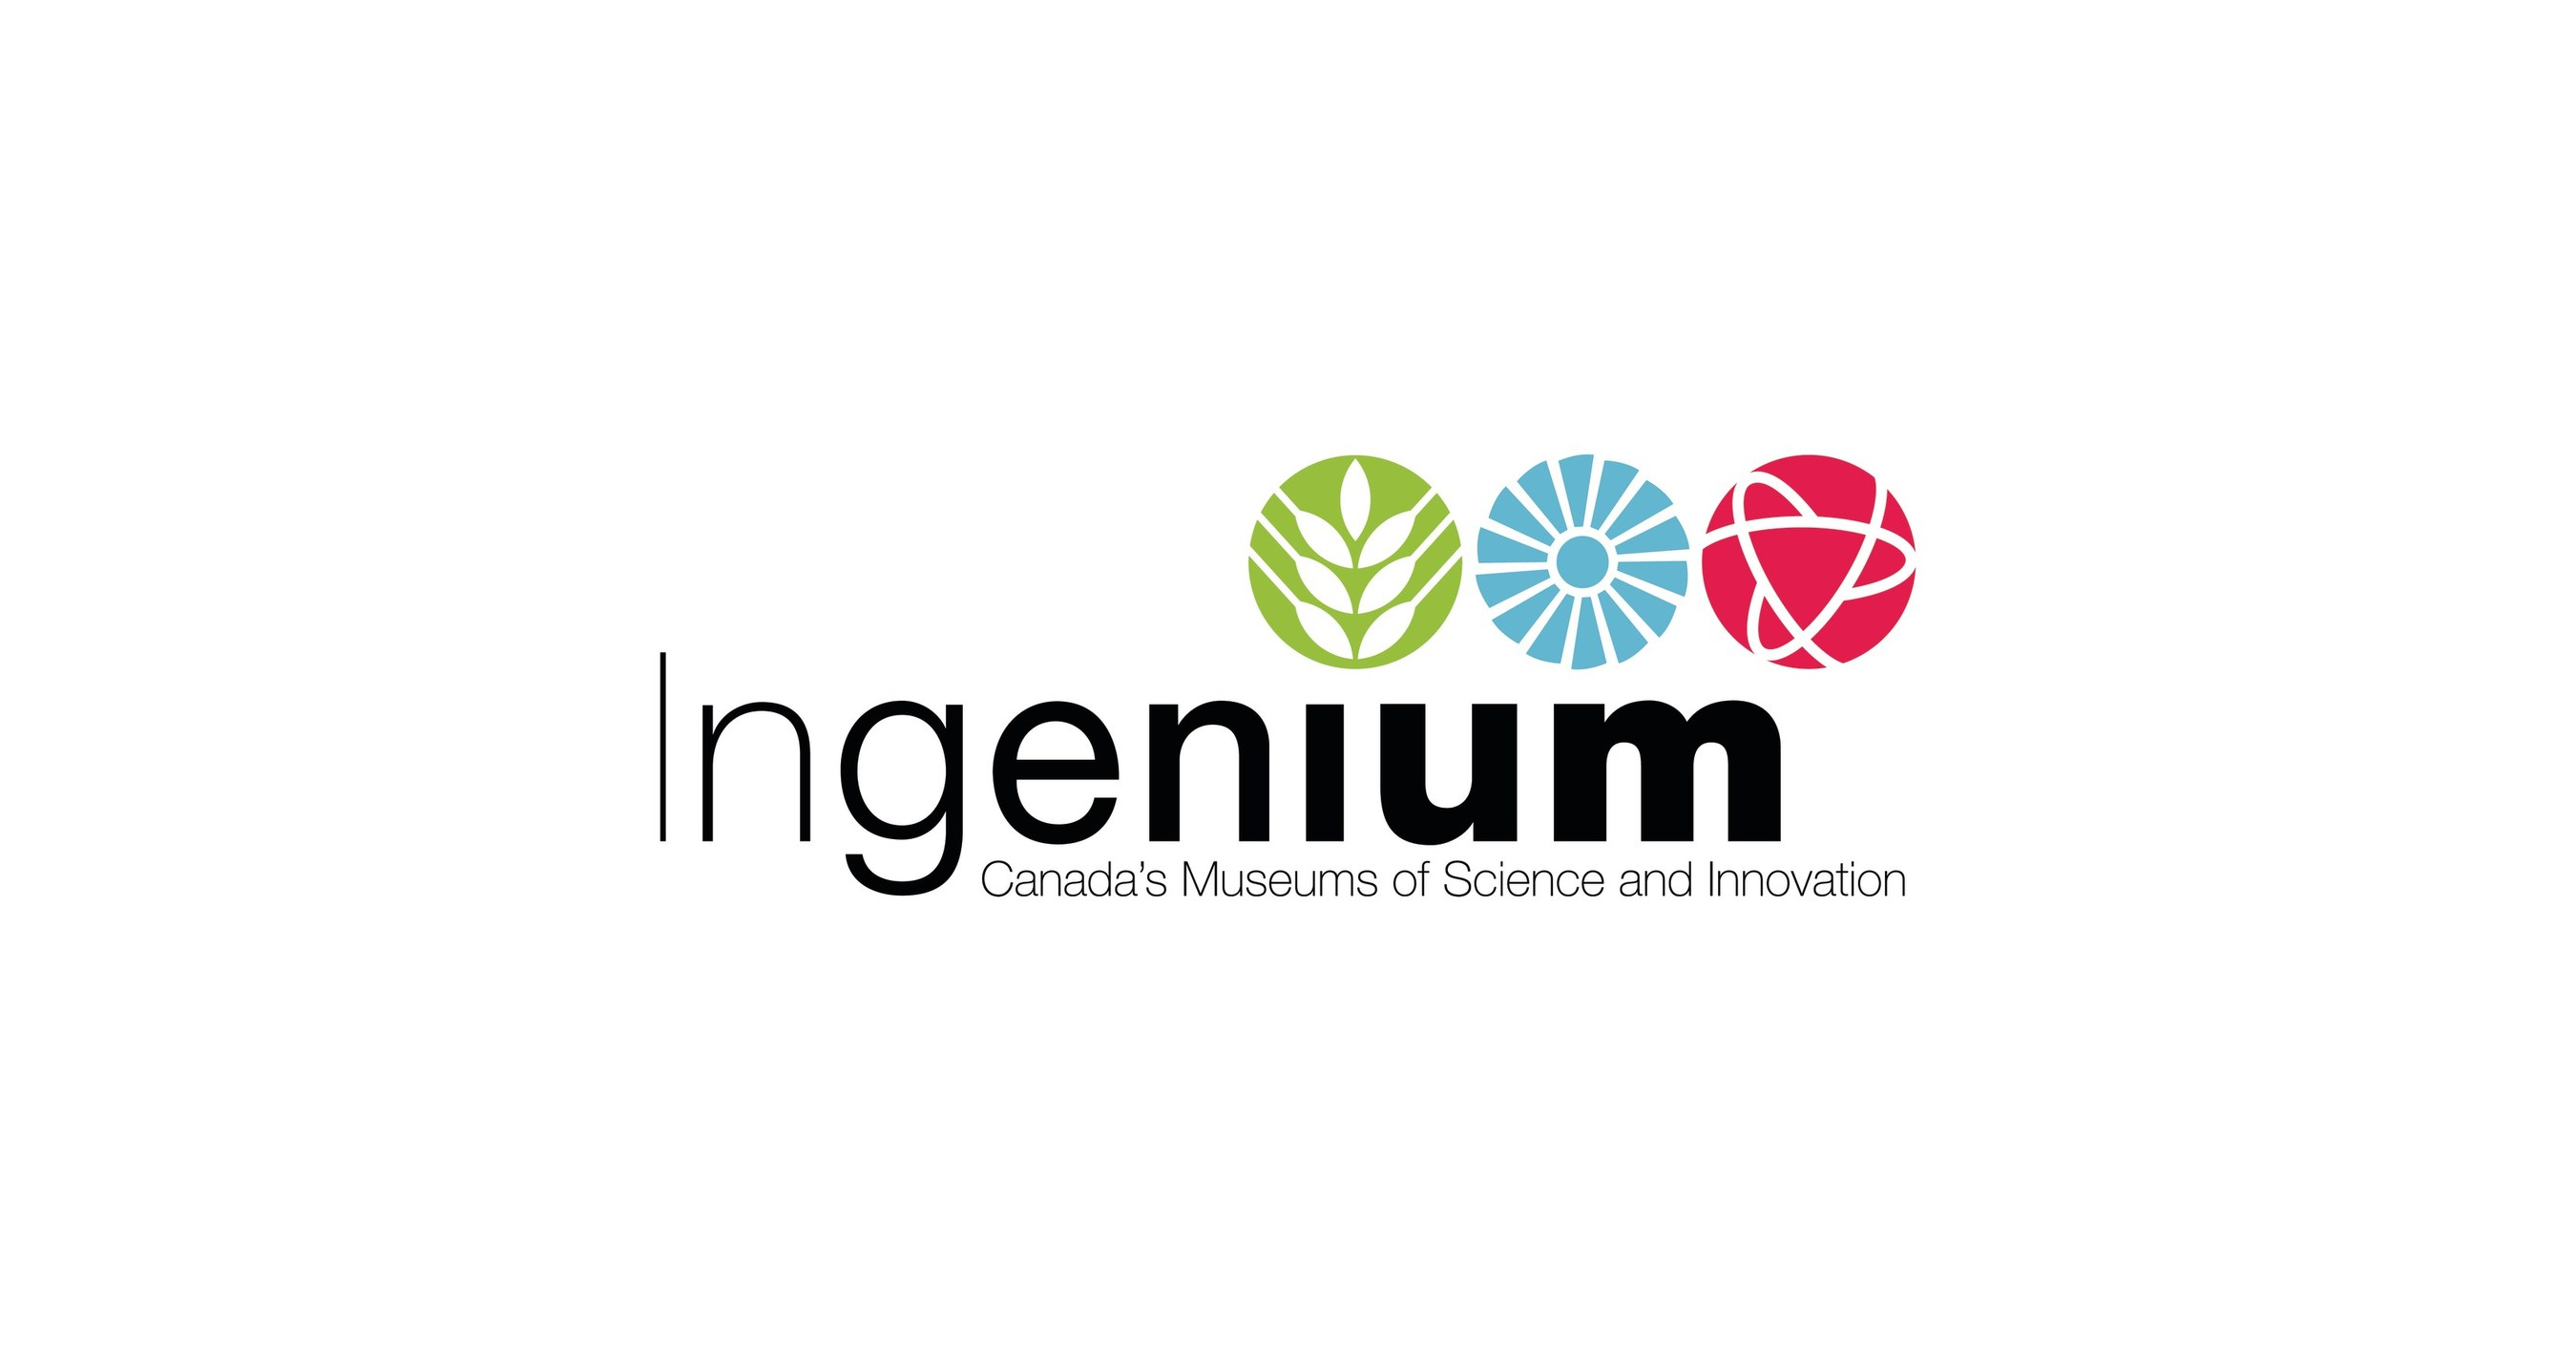 Ingenium launched as a new national brand to preserve and